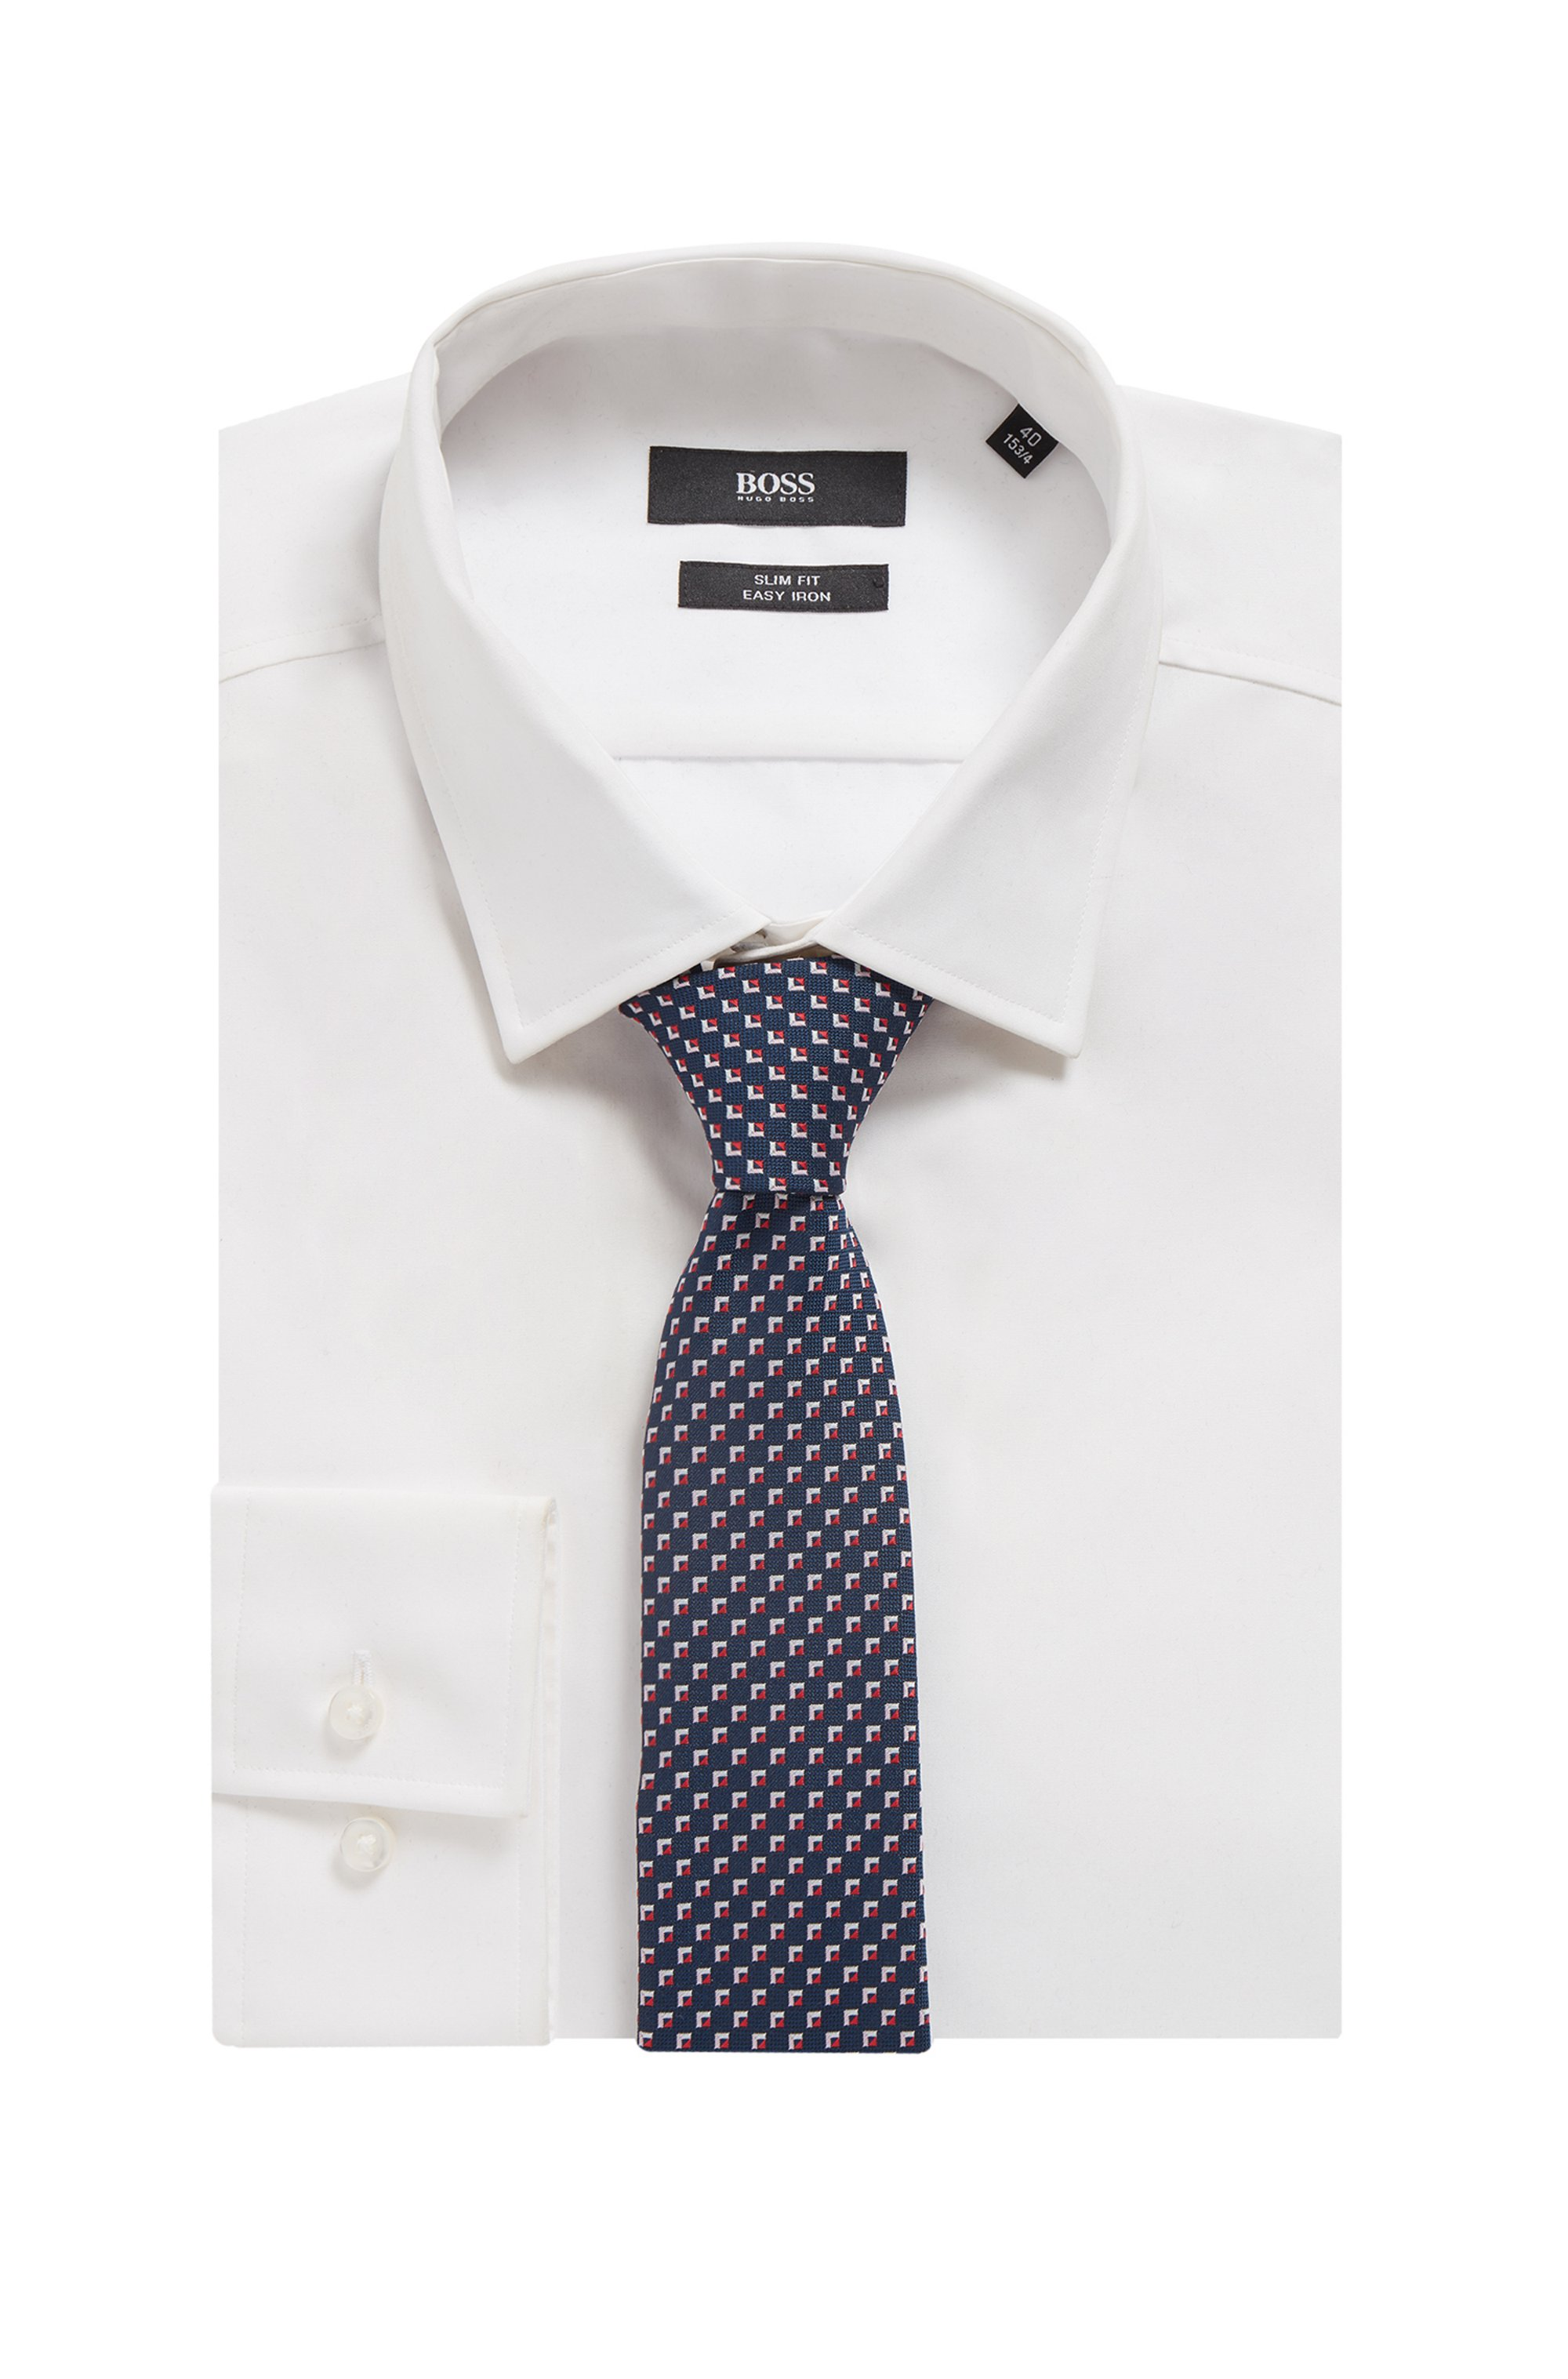 Micro-patterned tie in recycled material